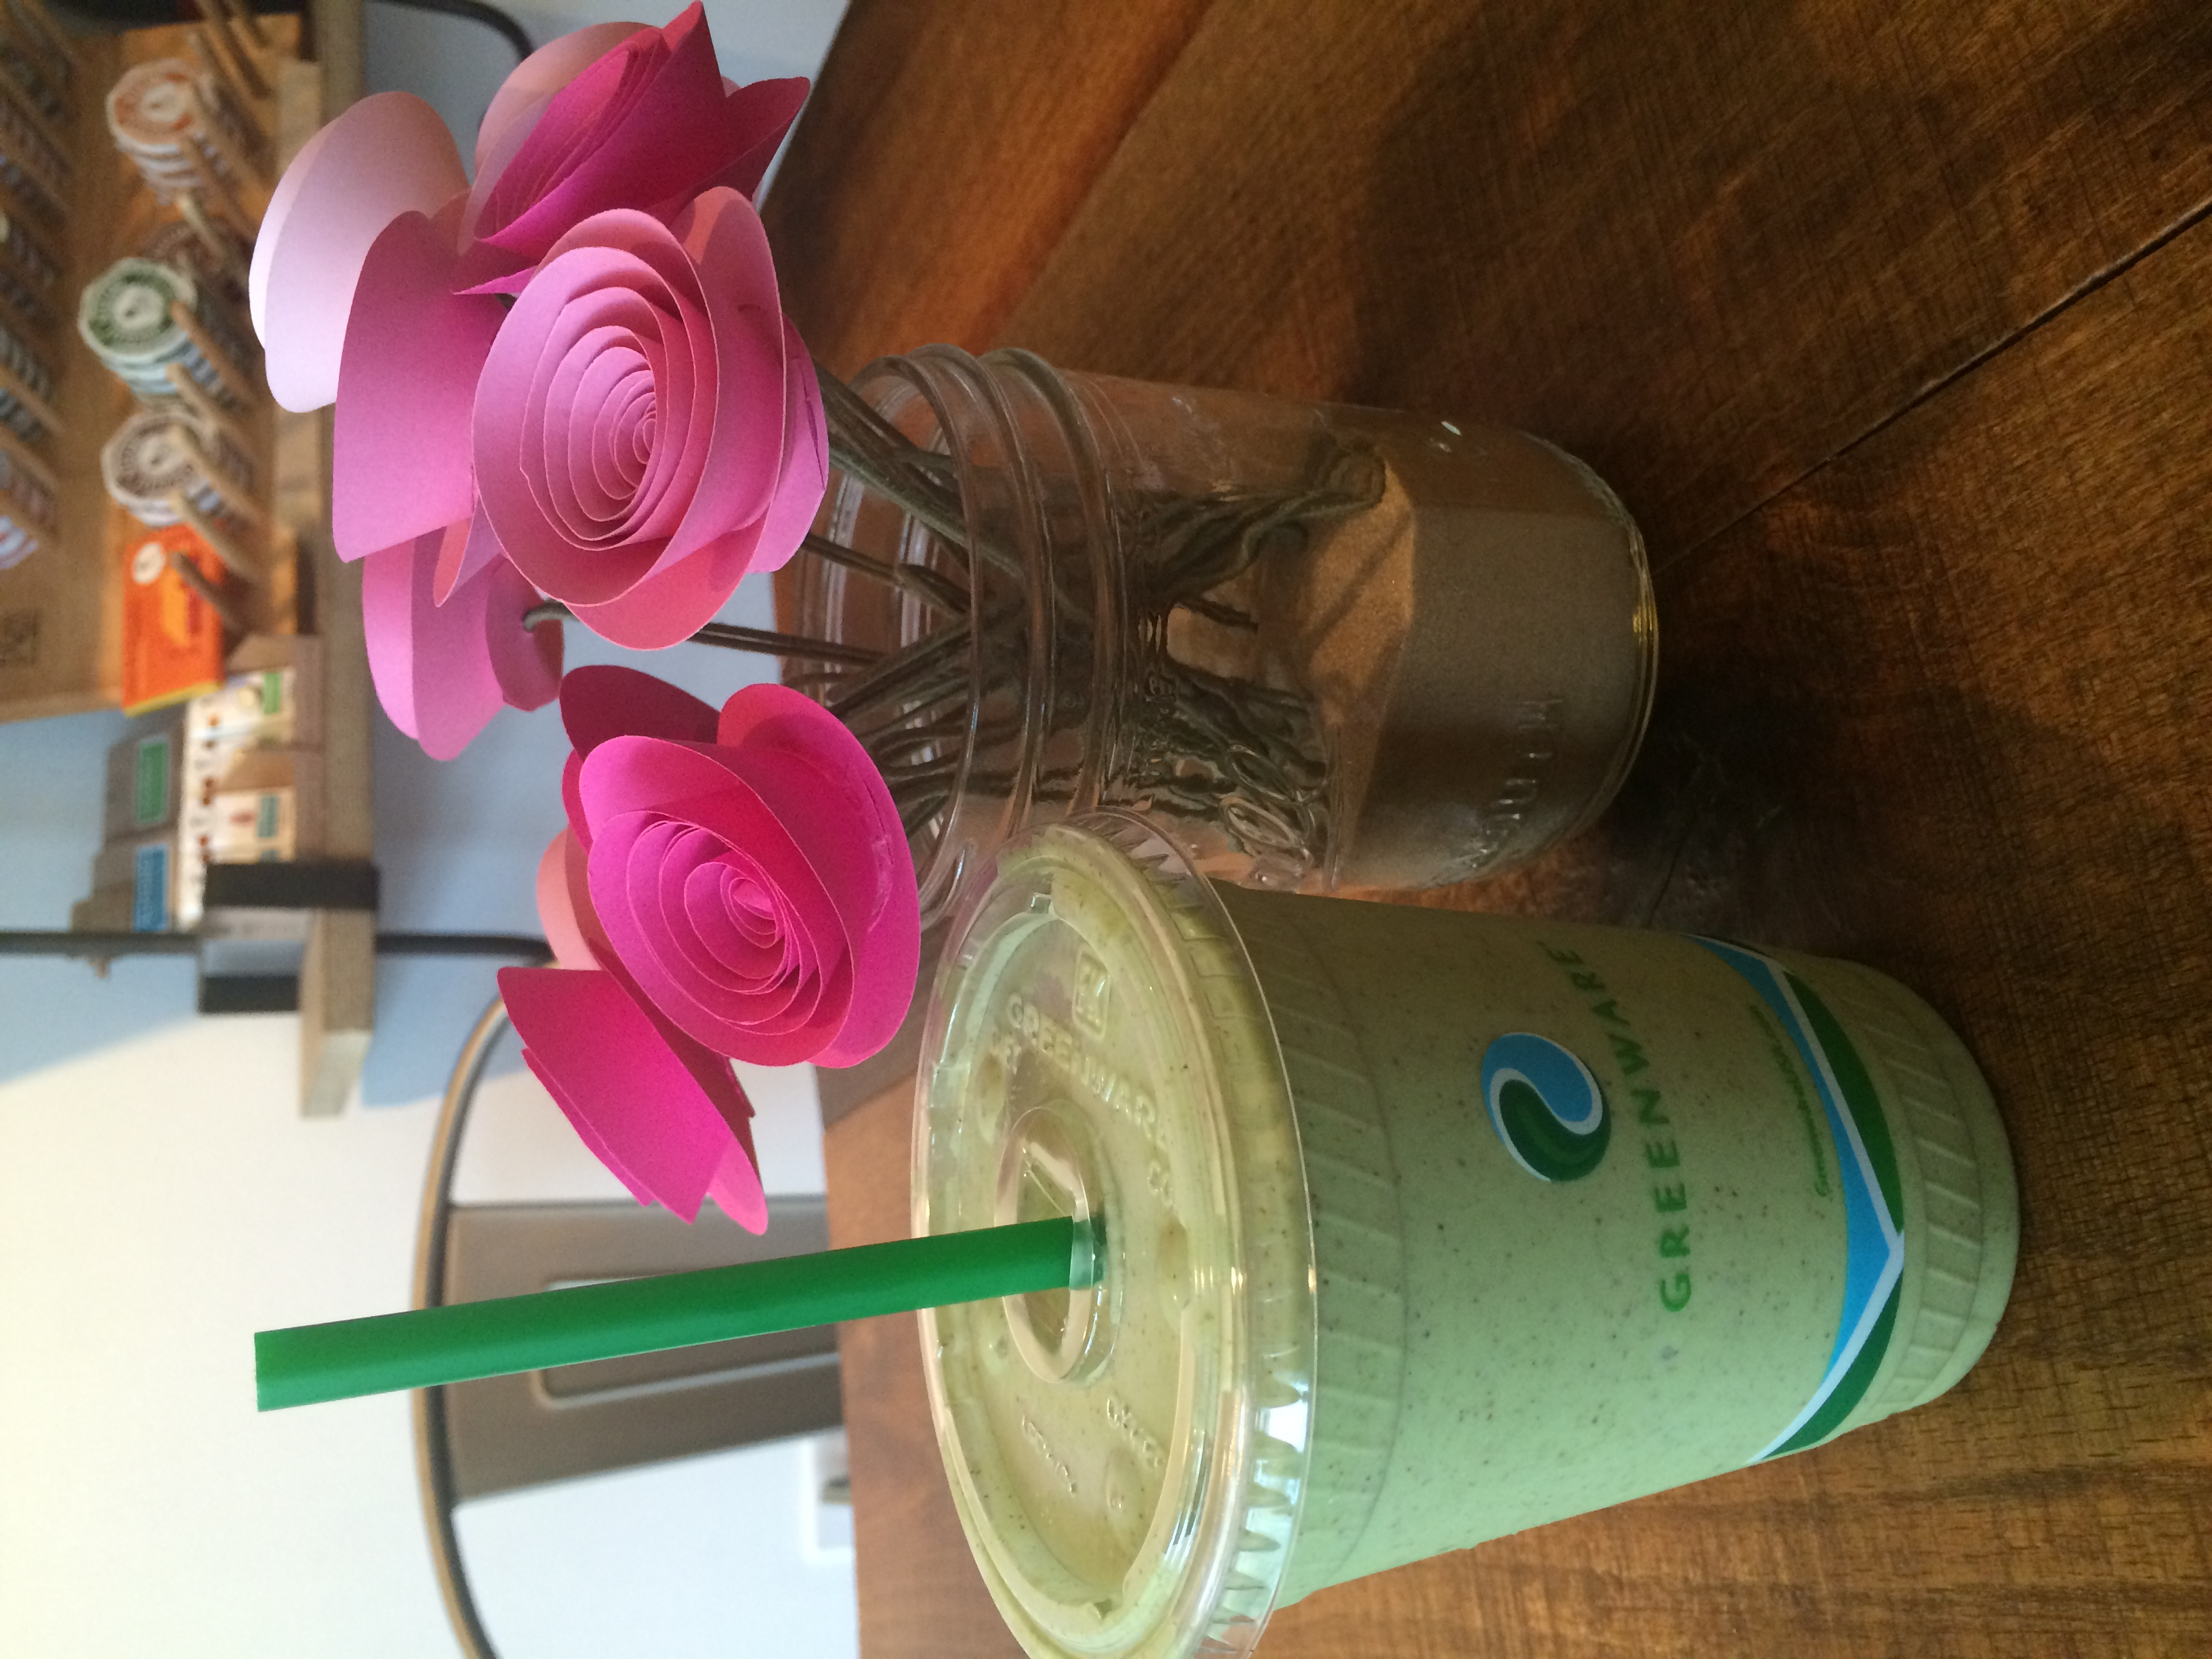 Green Apple Streudel Smoothie at Greenmouth Juice Bar & Cafe, Easton.